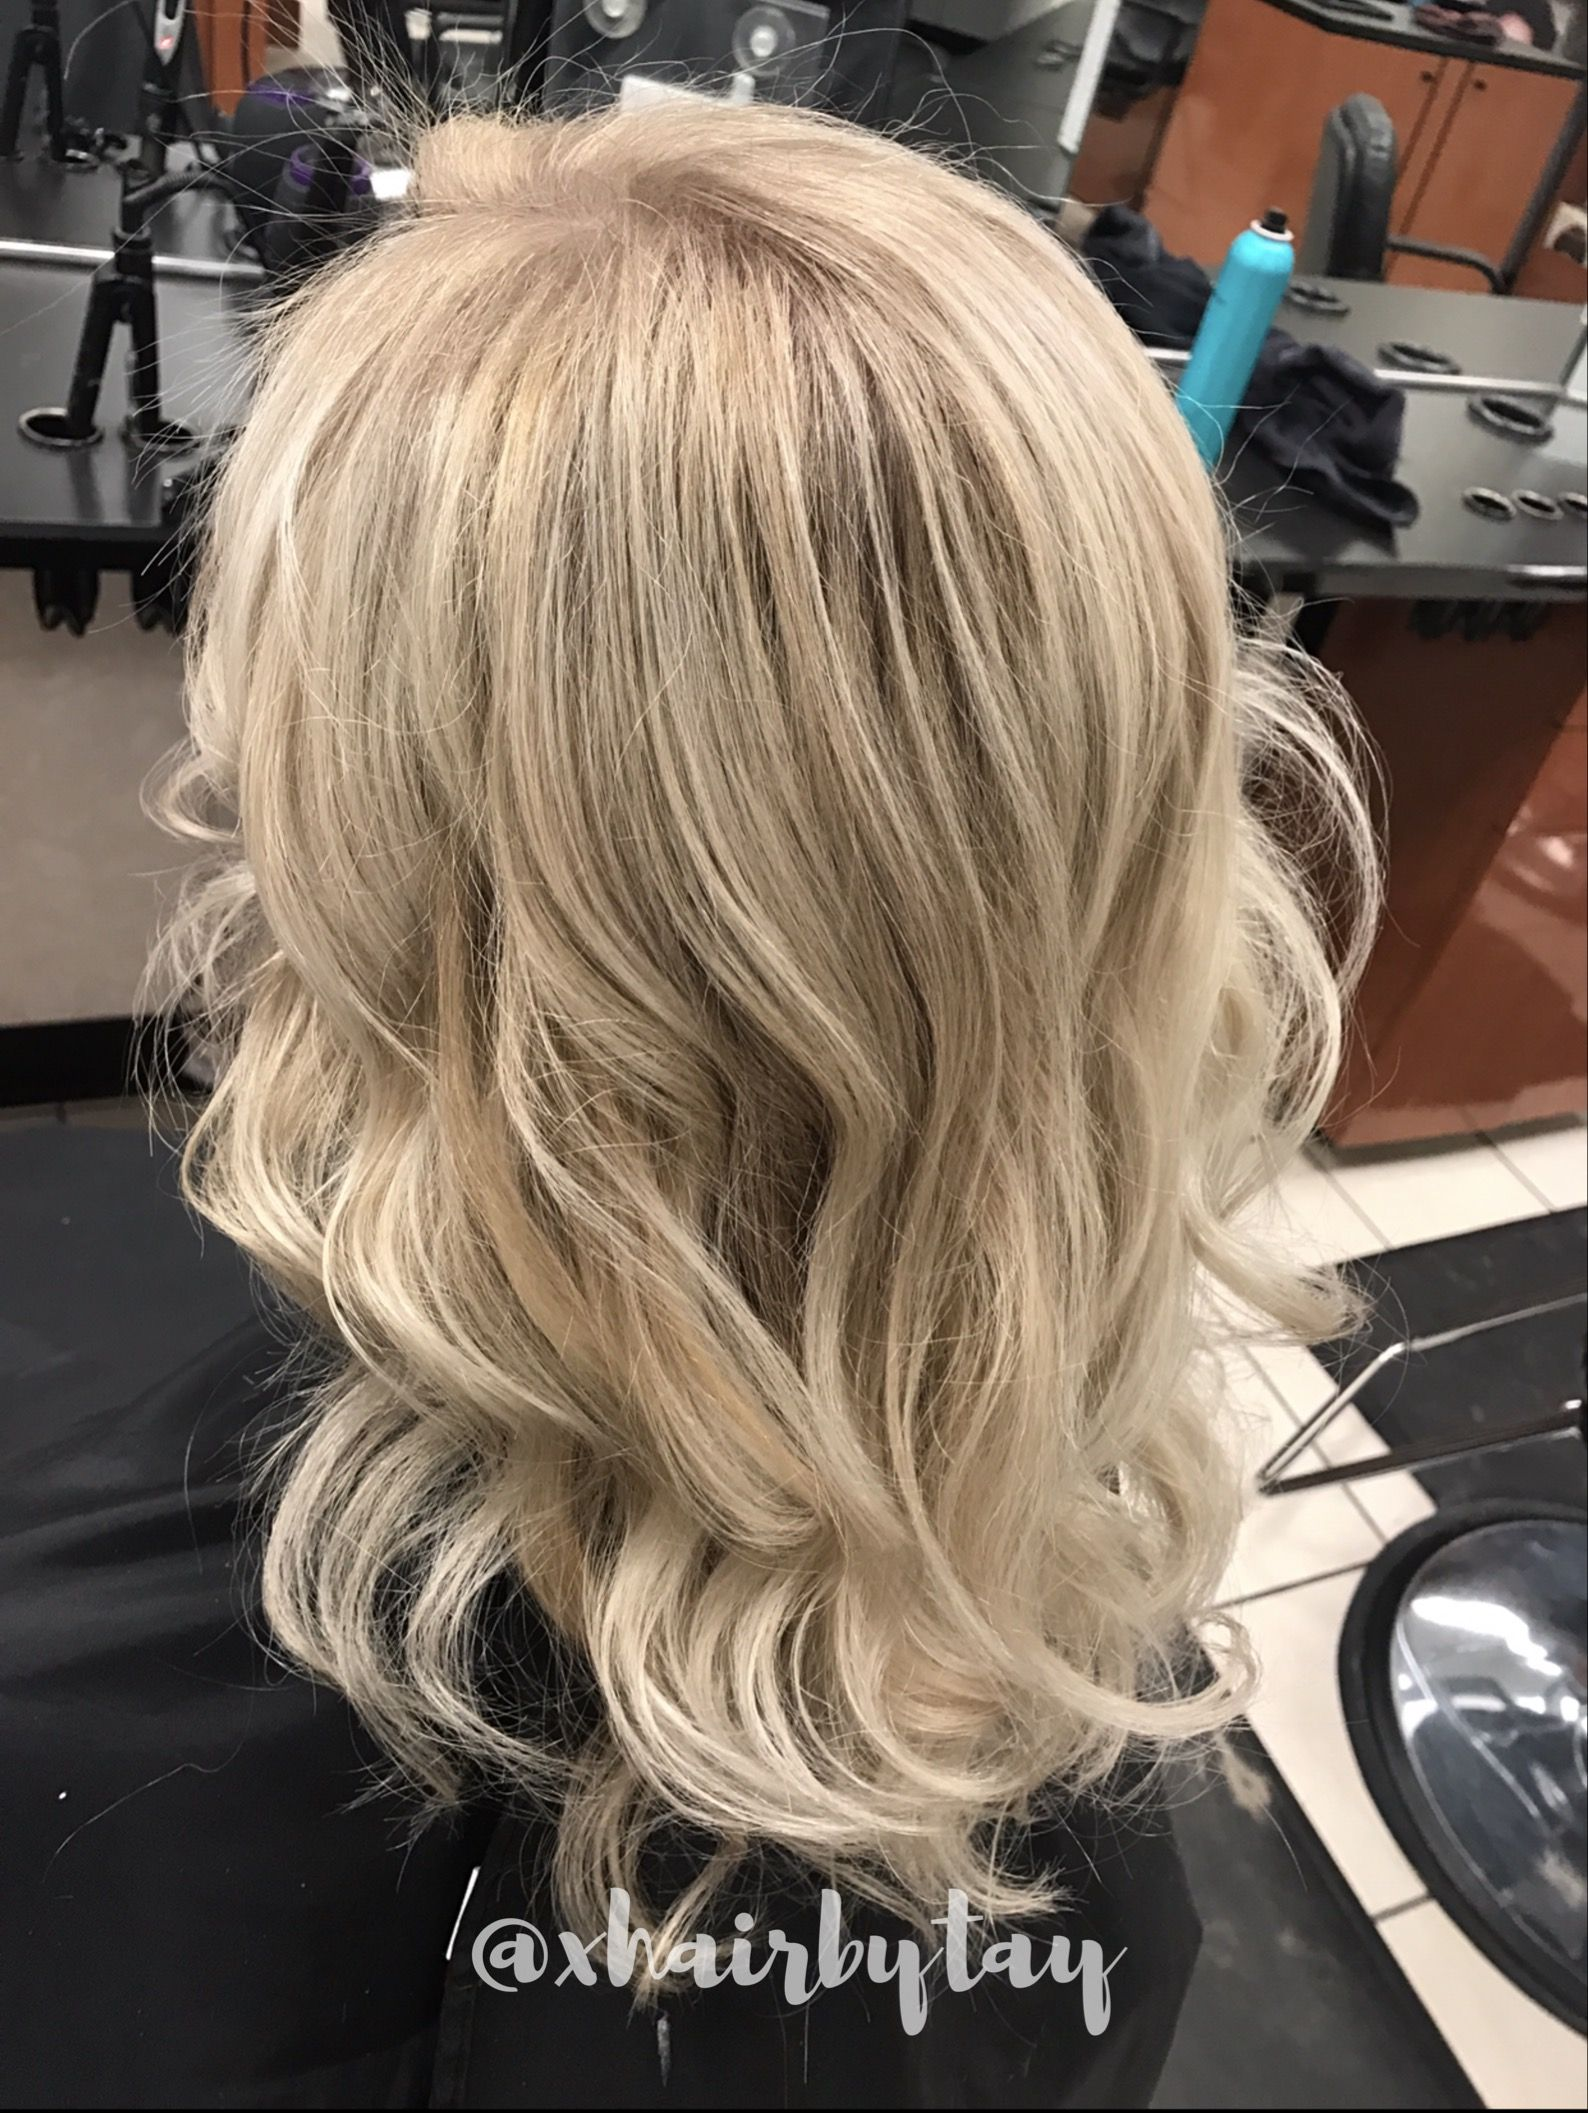 Butter blonde follow xhairbytay on instagram for more hair